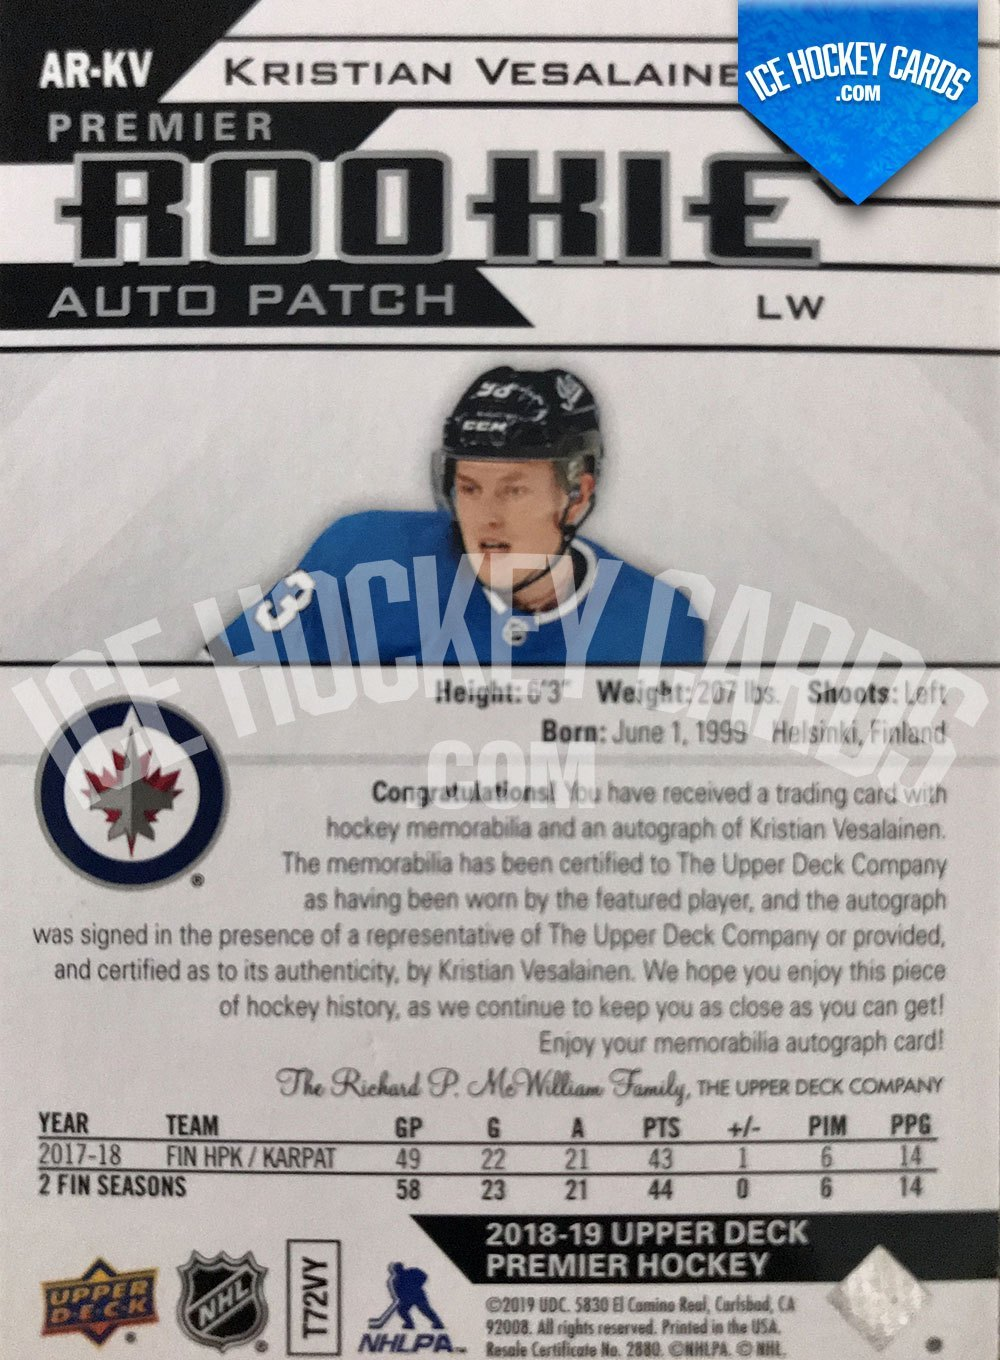 Upper Deck - Premier Hockey 2018-19 - Kristian Vesalainen Premier Rookie Auto Patch RC back